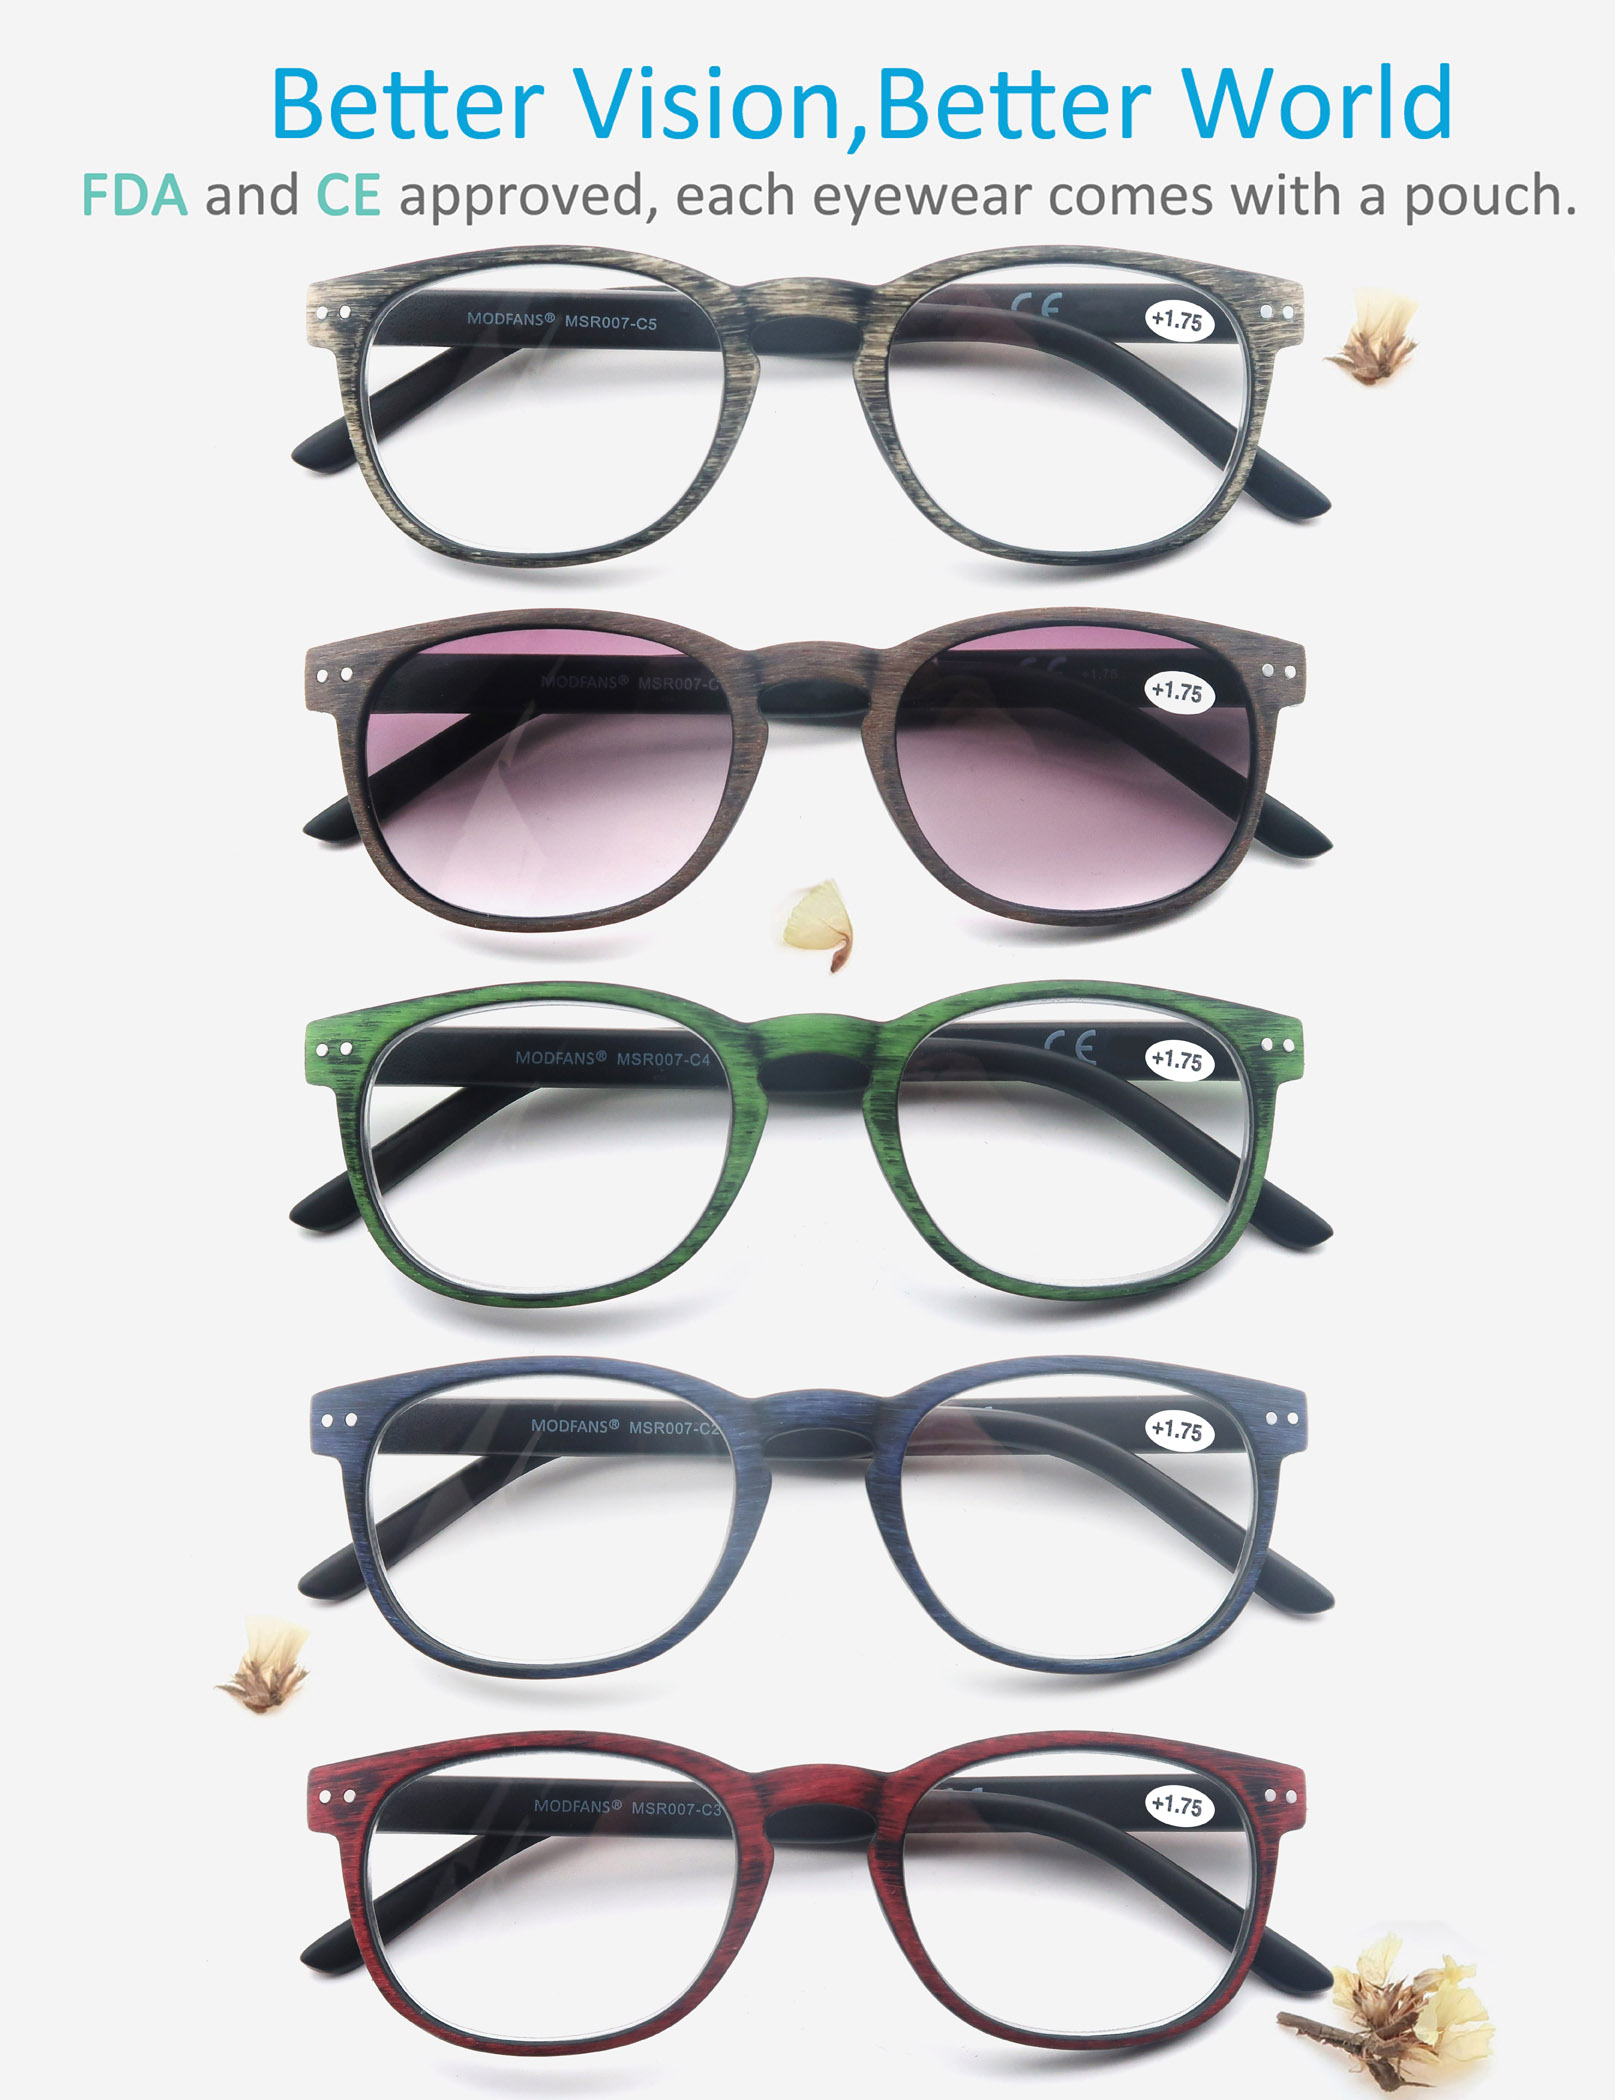 Round <font><b>Reading</b></font> <font><b>Glasses</b></font> <font><b>Men</b></font> Women Wood Look Frame Unisex Eyeglasses Vintage Spring hinge diopter 1 1.25 1.5 1.75 2 <font><b>2.25</b></font> 2.5 3 3.5 image